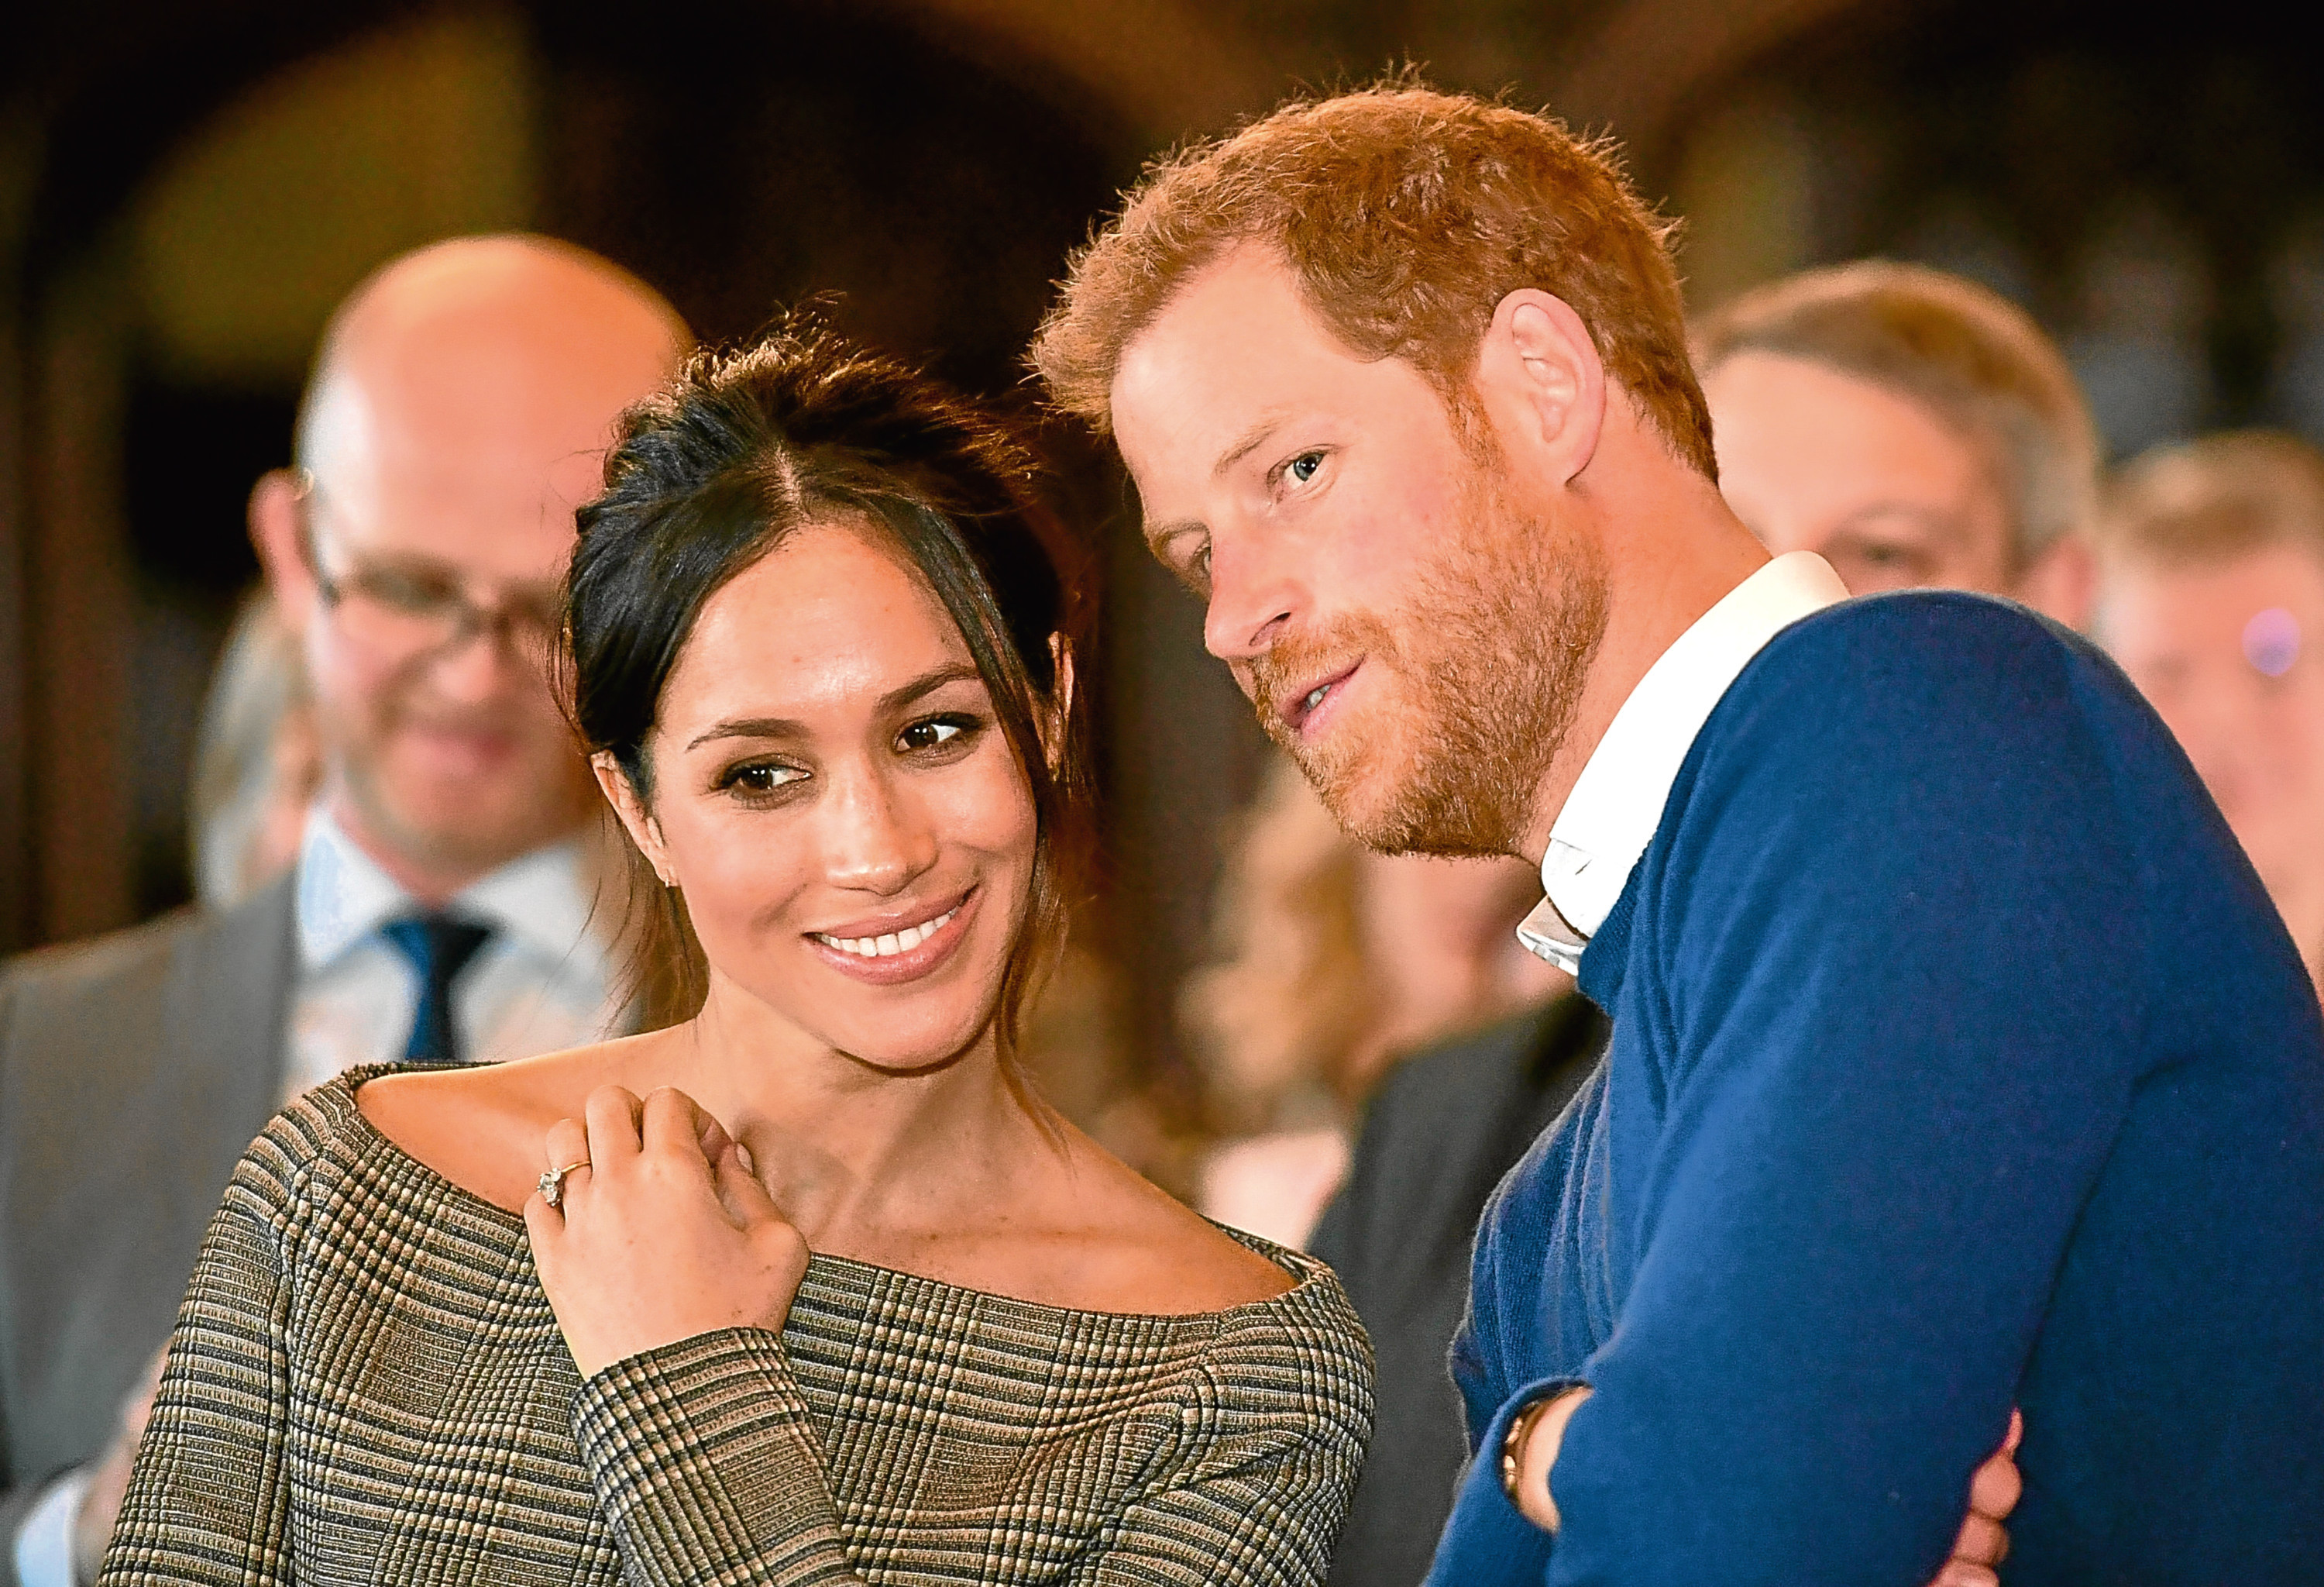 Royal Wedding Youtube.Youtube Sees Huge Rise In Views Of Harry And Meghan Videos Ahead Of